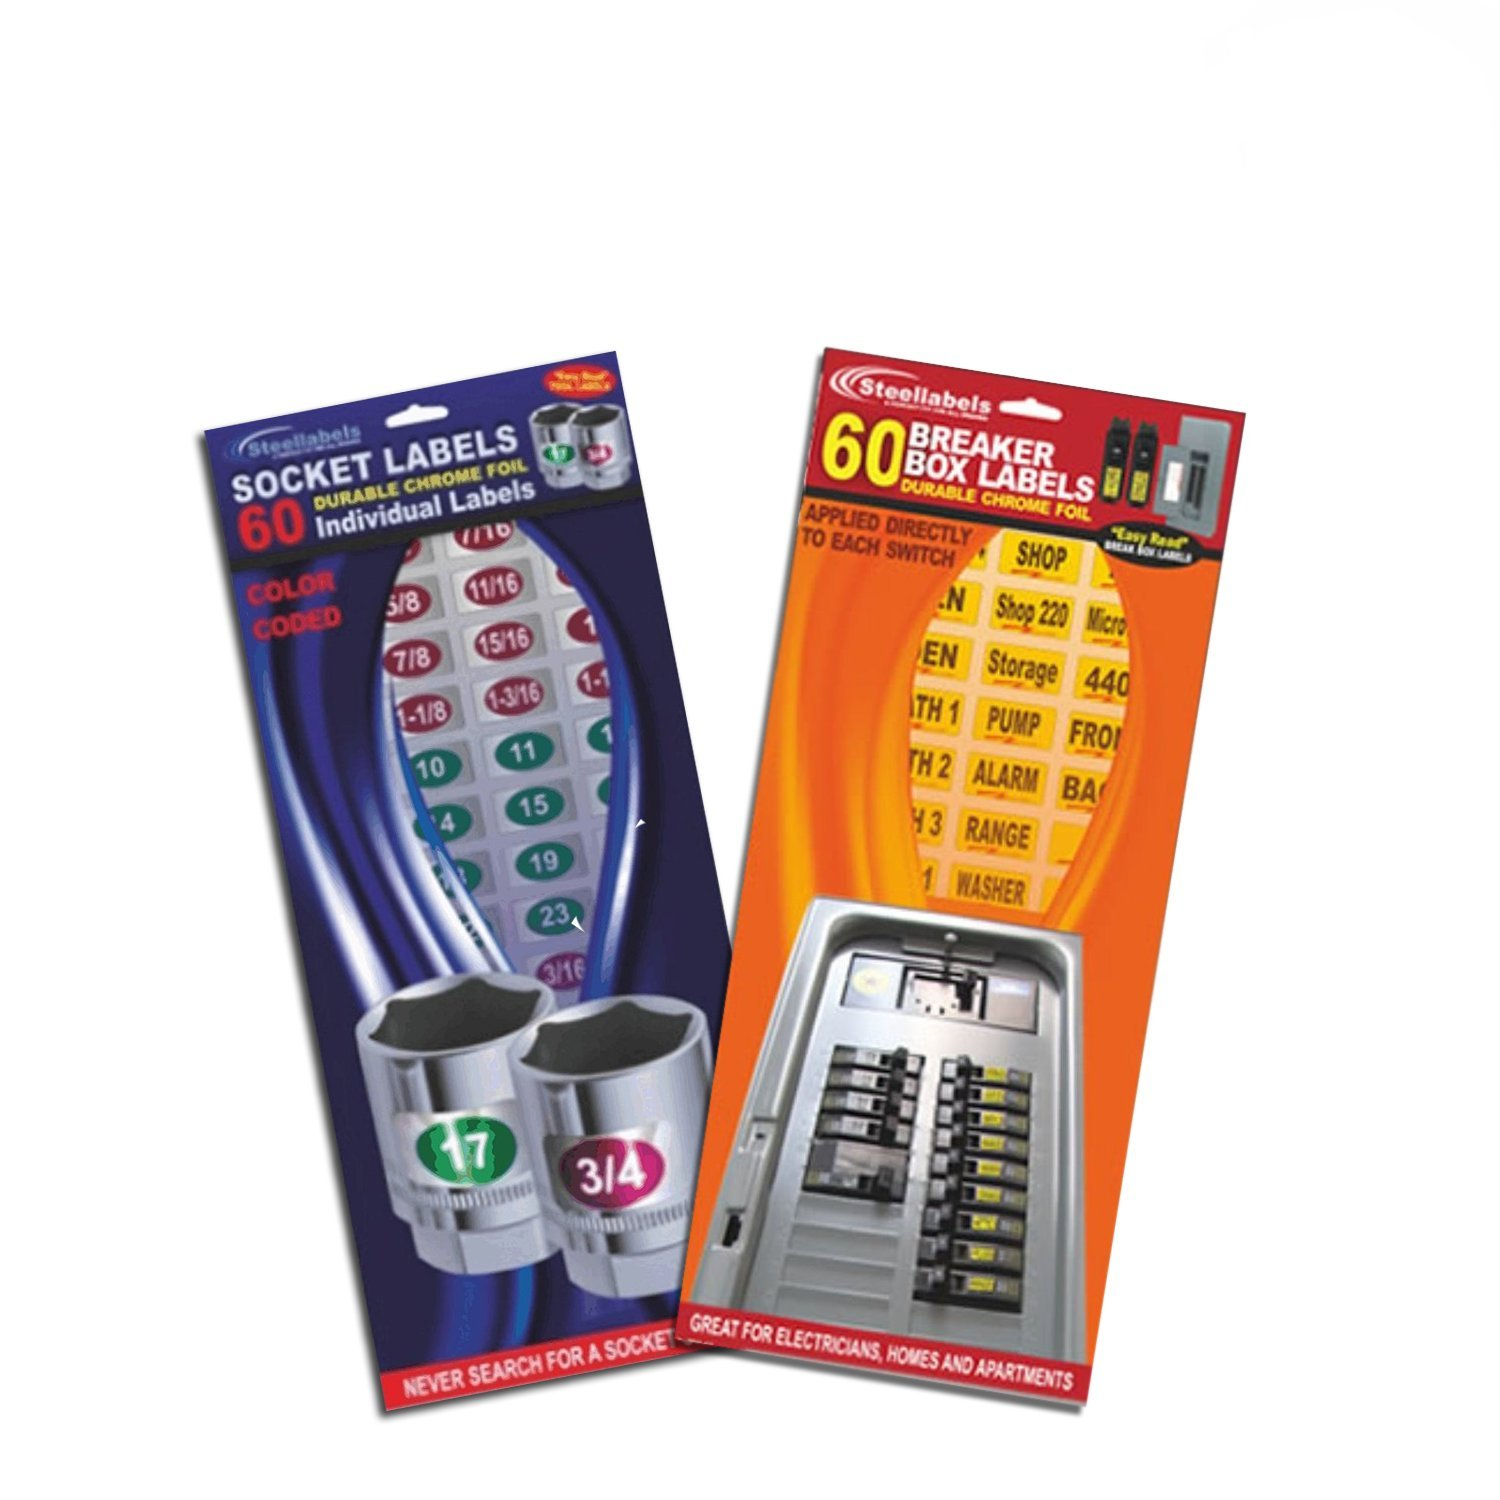 Breaker Box Decals Plus Socket Label Combo Tough Vinyl Labels For Circuit Guides Kit Get 149 Identifier A Breakers And Chrome Foil Your Tools Great Home Owners